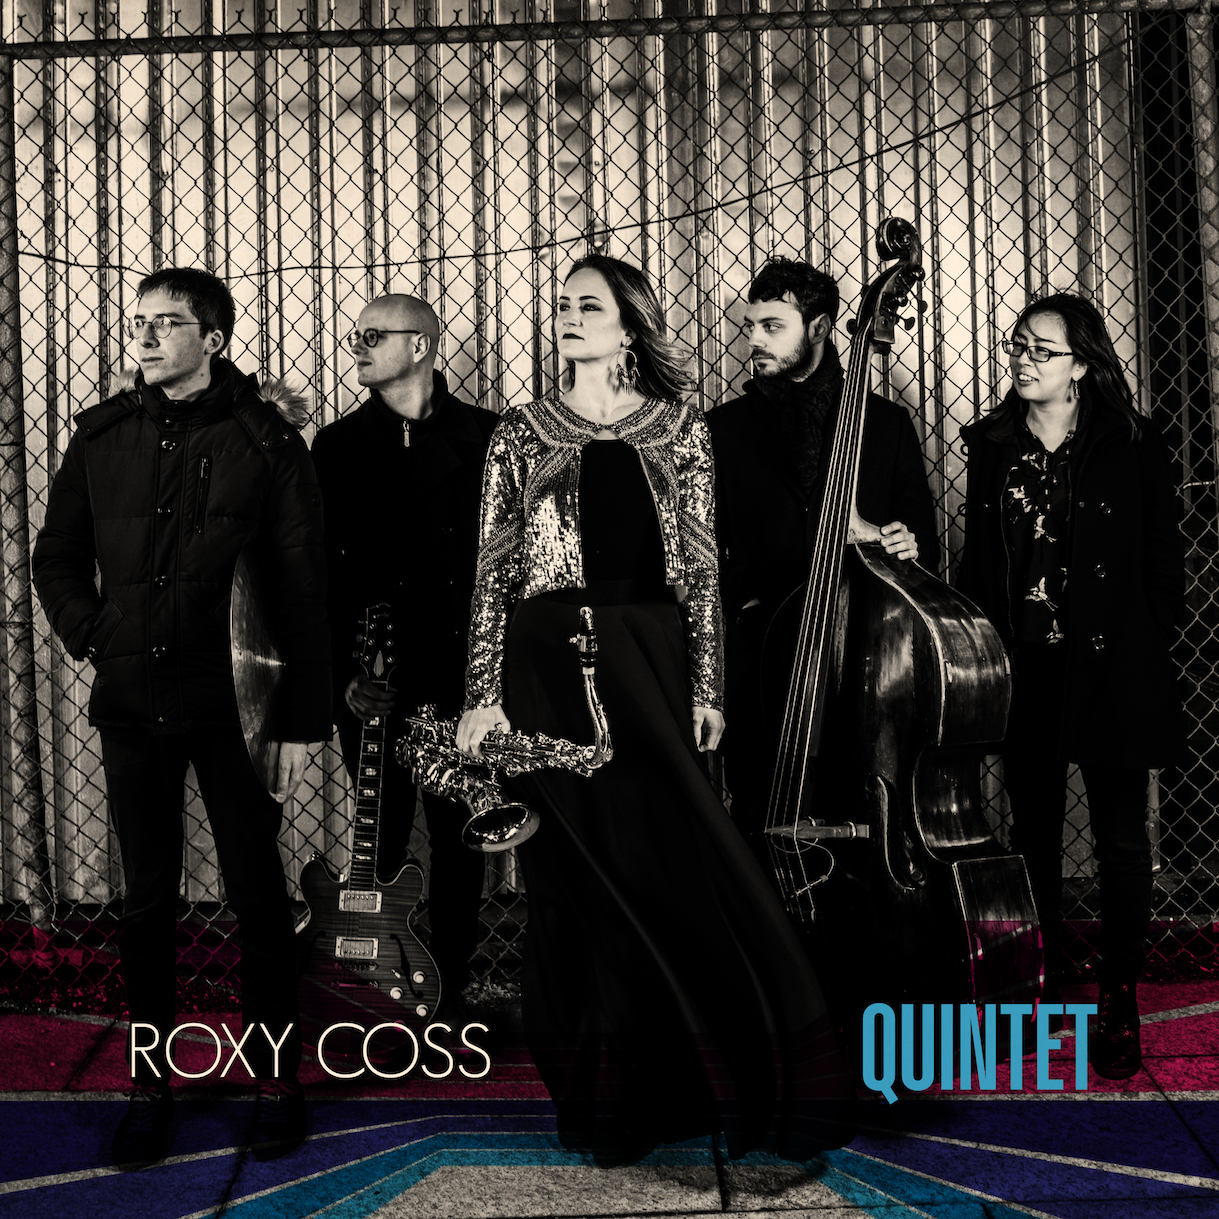 REVIEW: Roxy Coss' 'Quintet' Gets a 4 Star Review from All About Jazz!